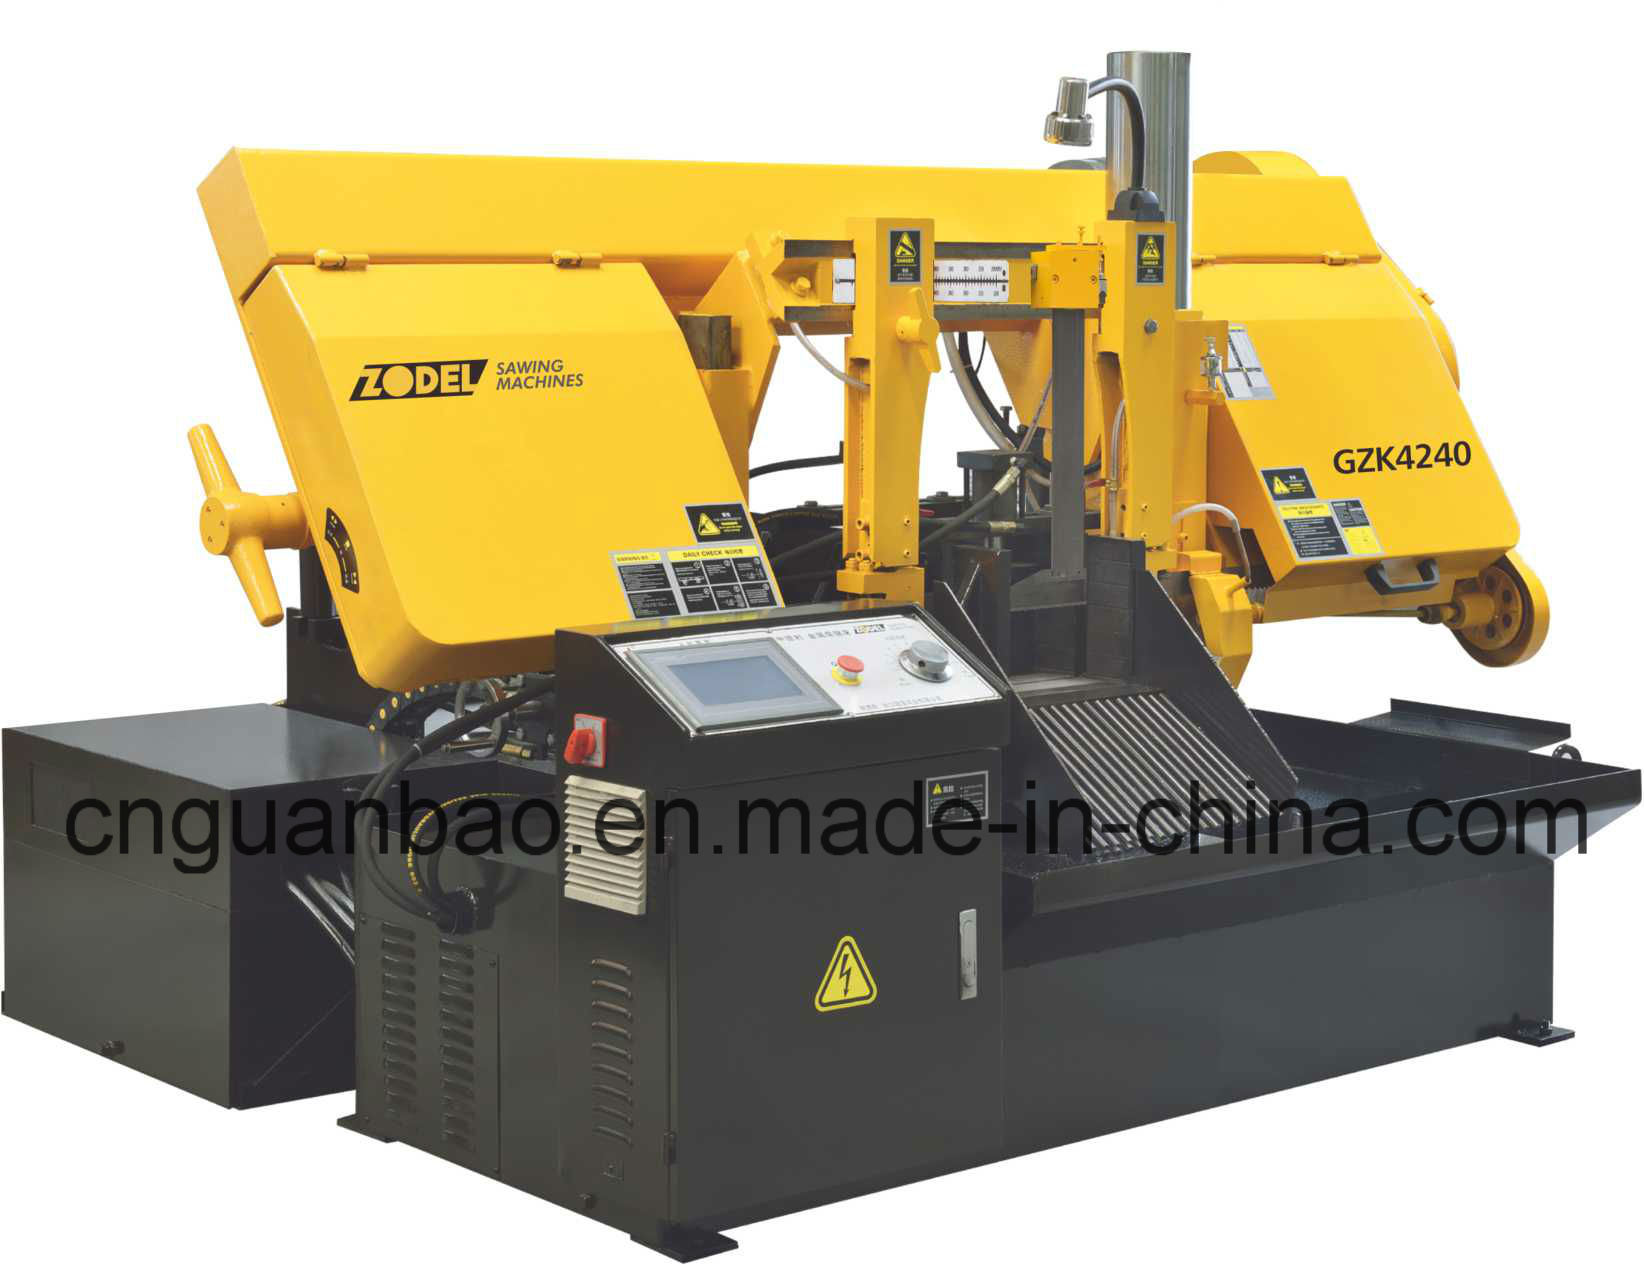 CNC Band Saw Machine Gzk4240 with CE, ISO Certificate